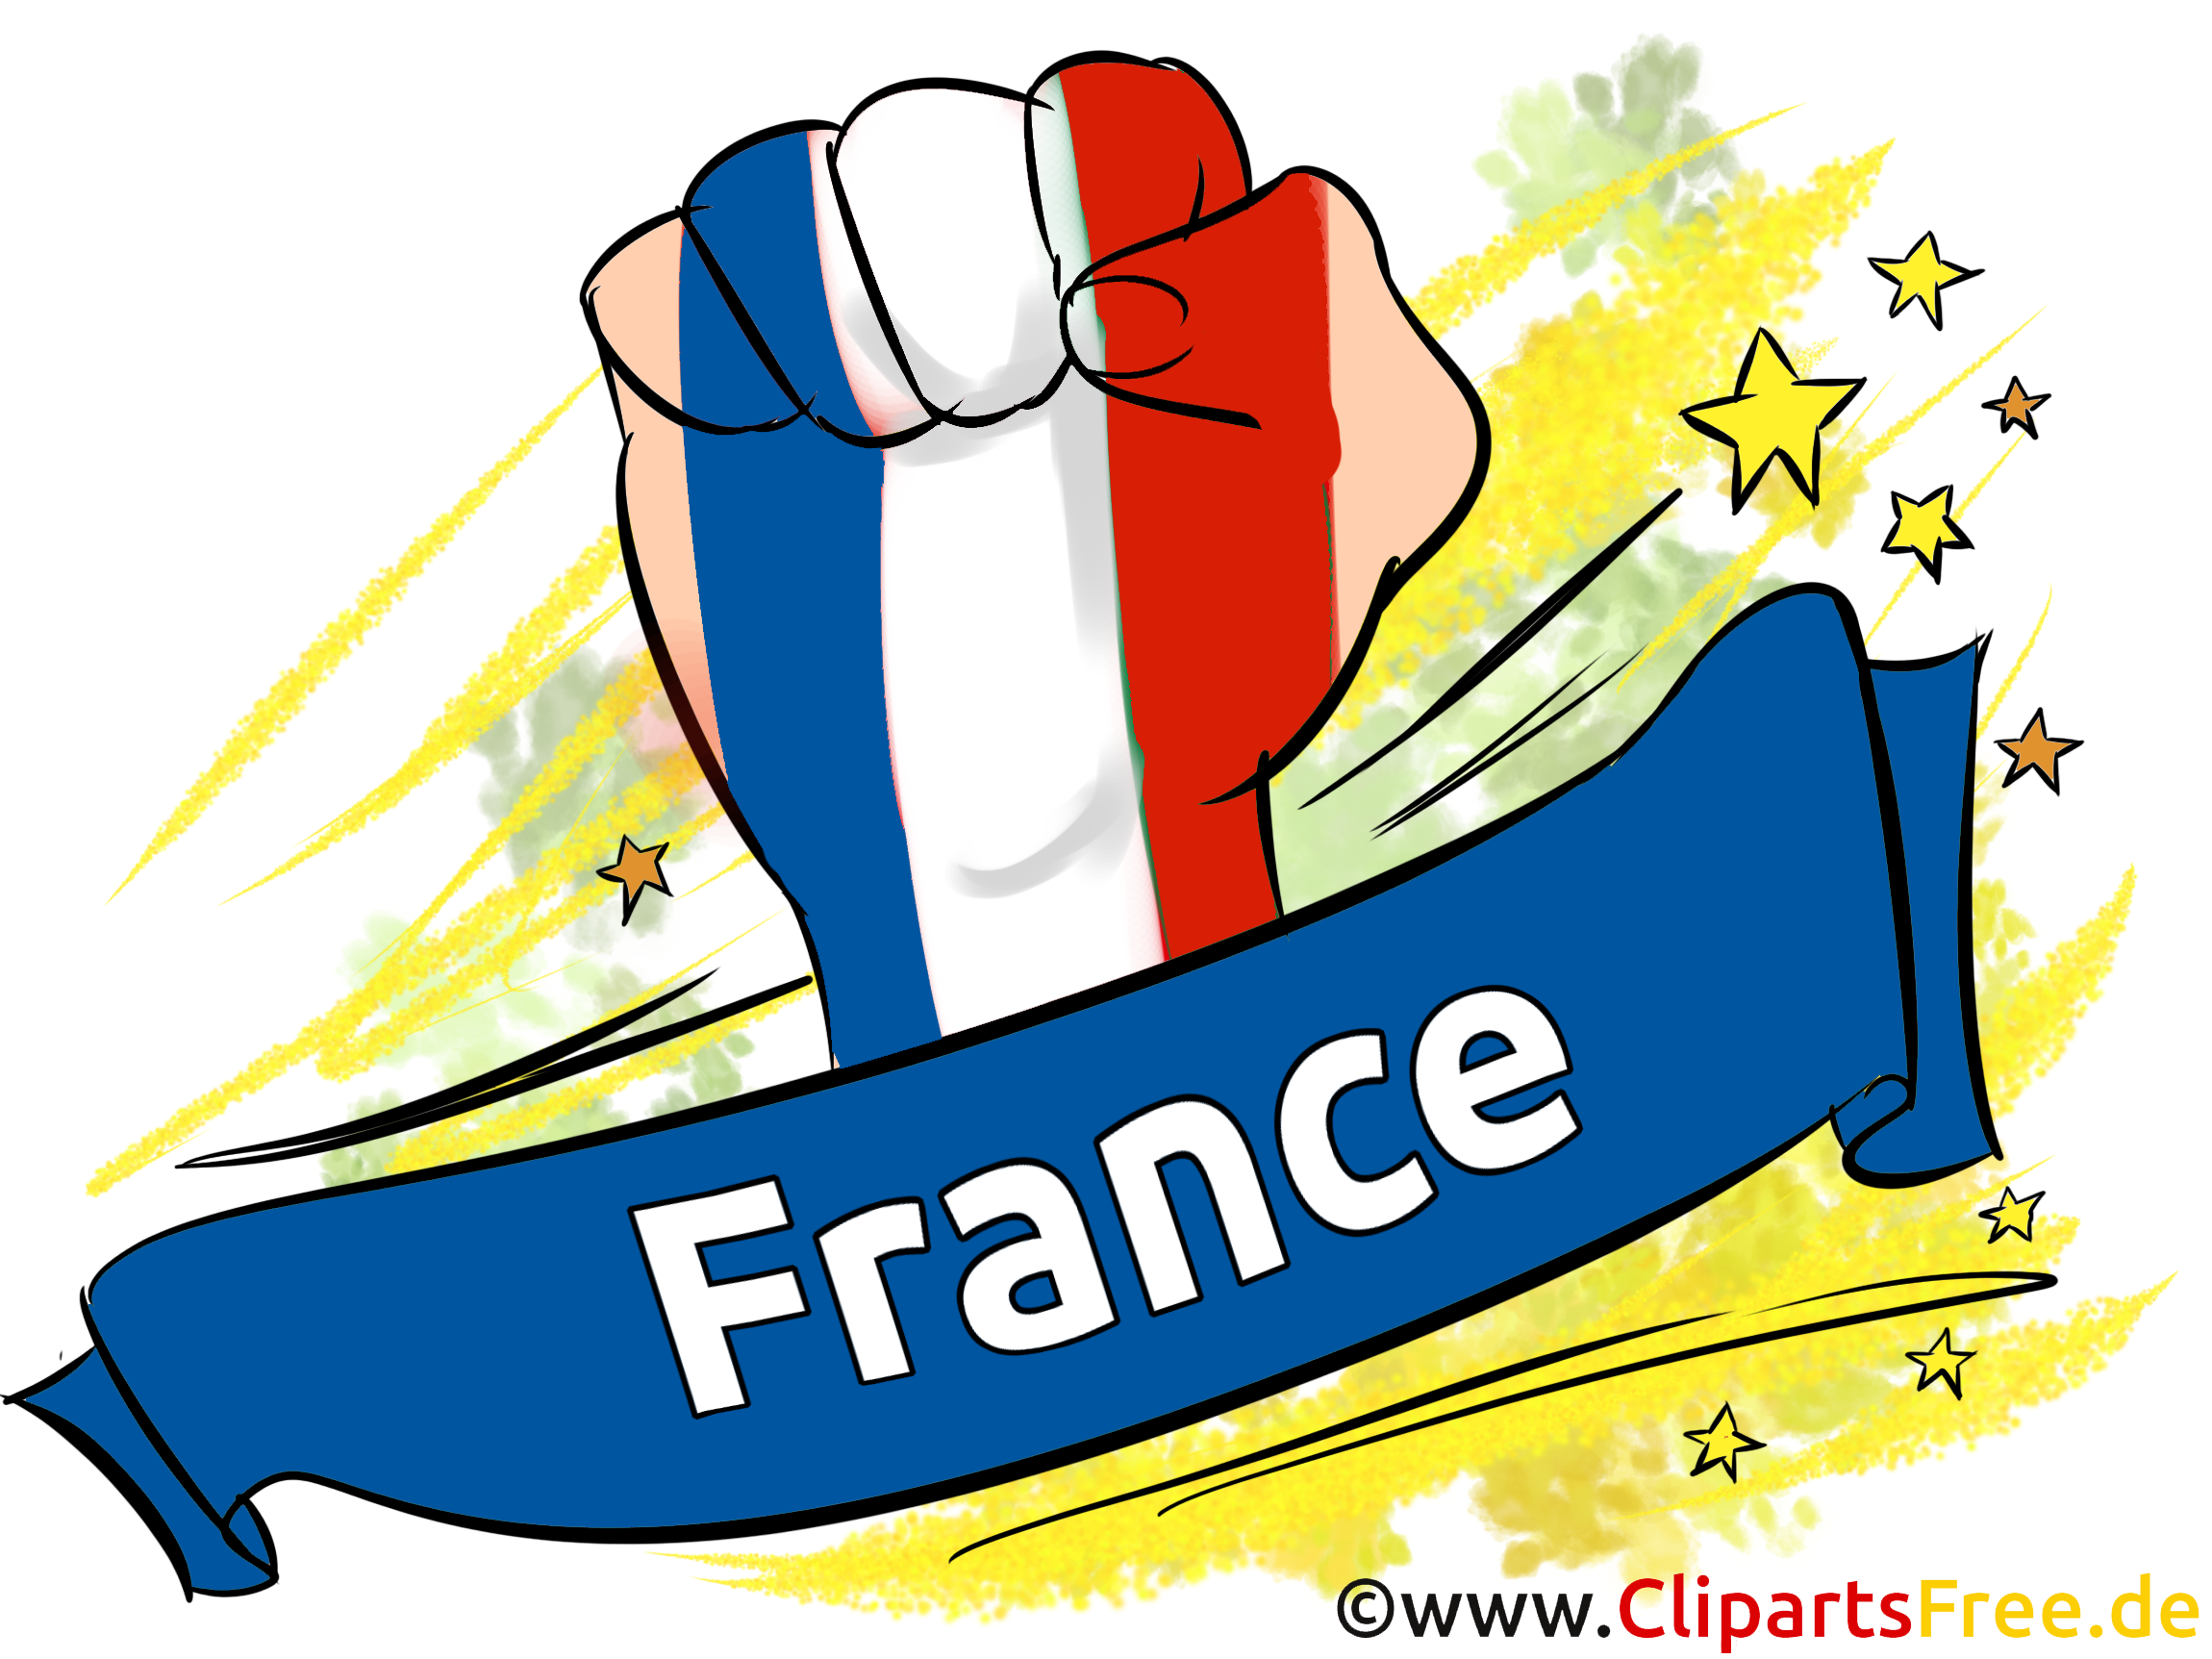 France sport clipart image t l charger gratuitement france football dessin picture image - France football gratuit ...